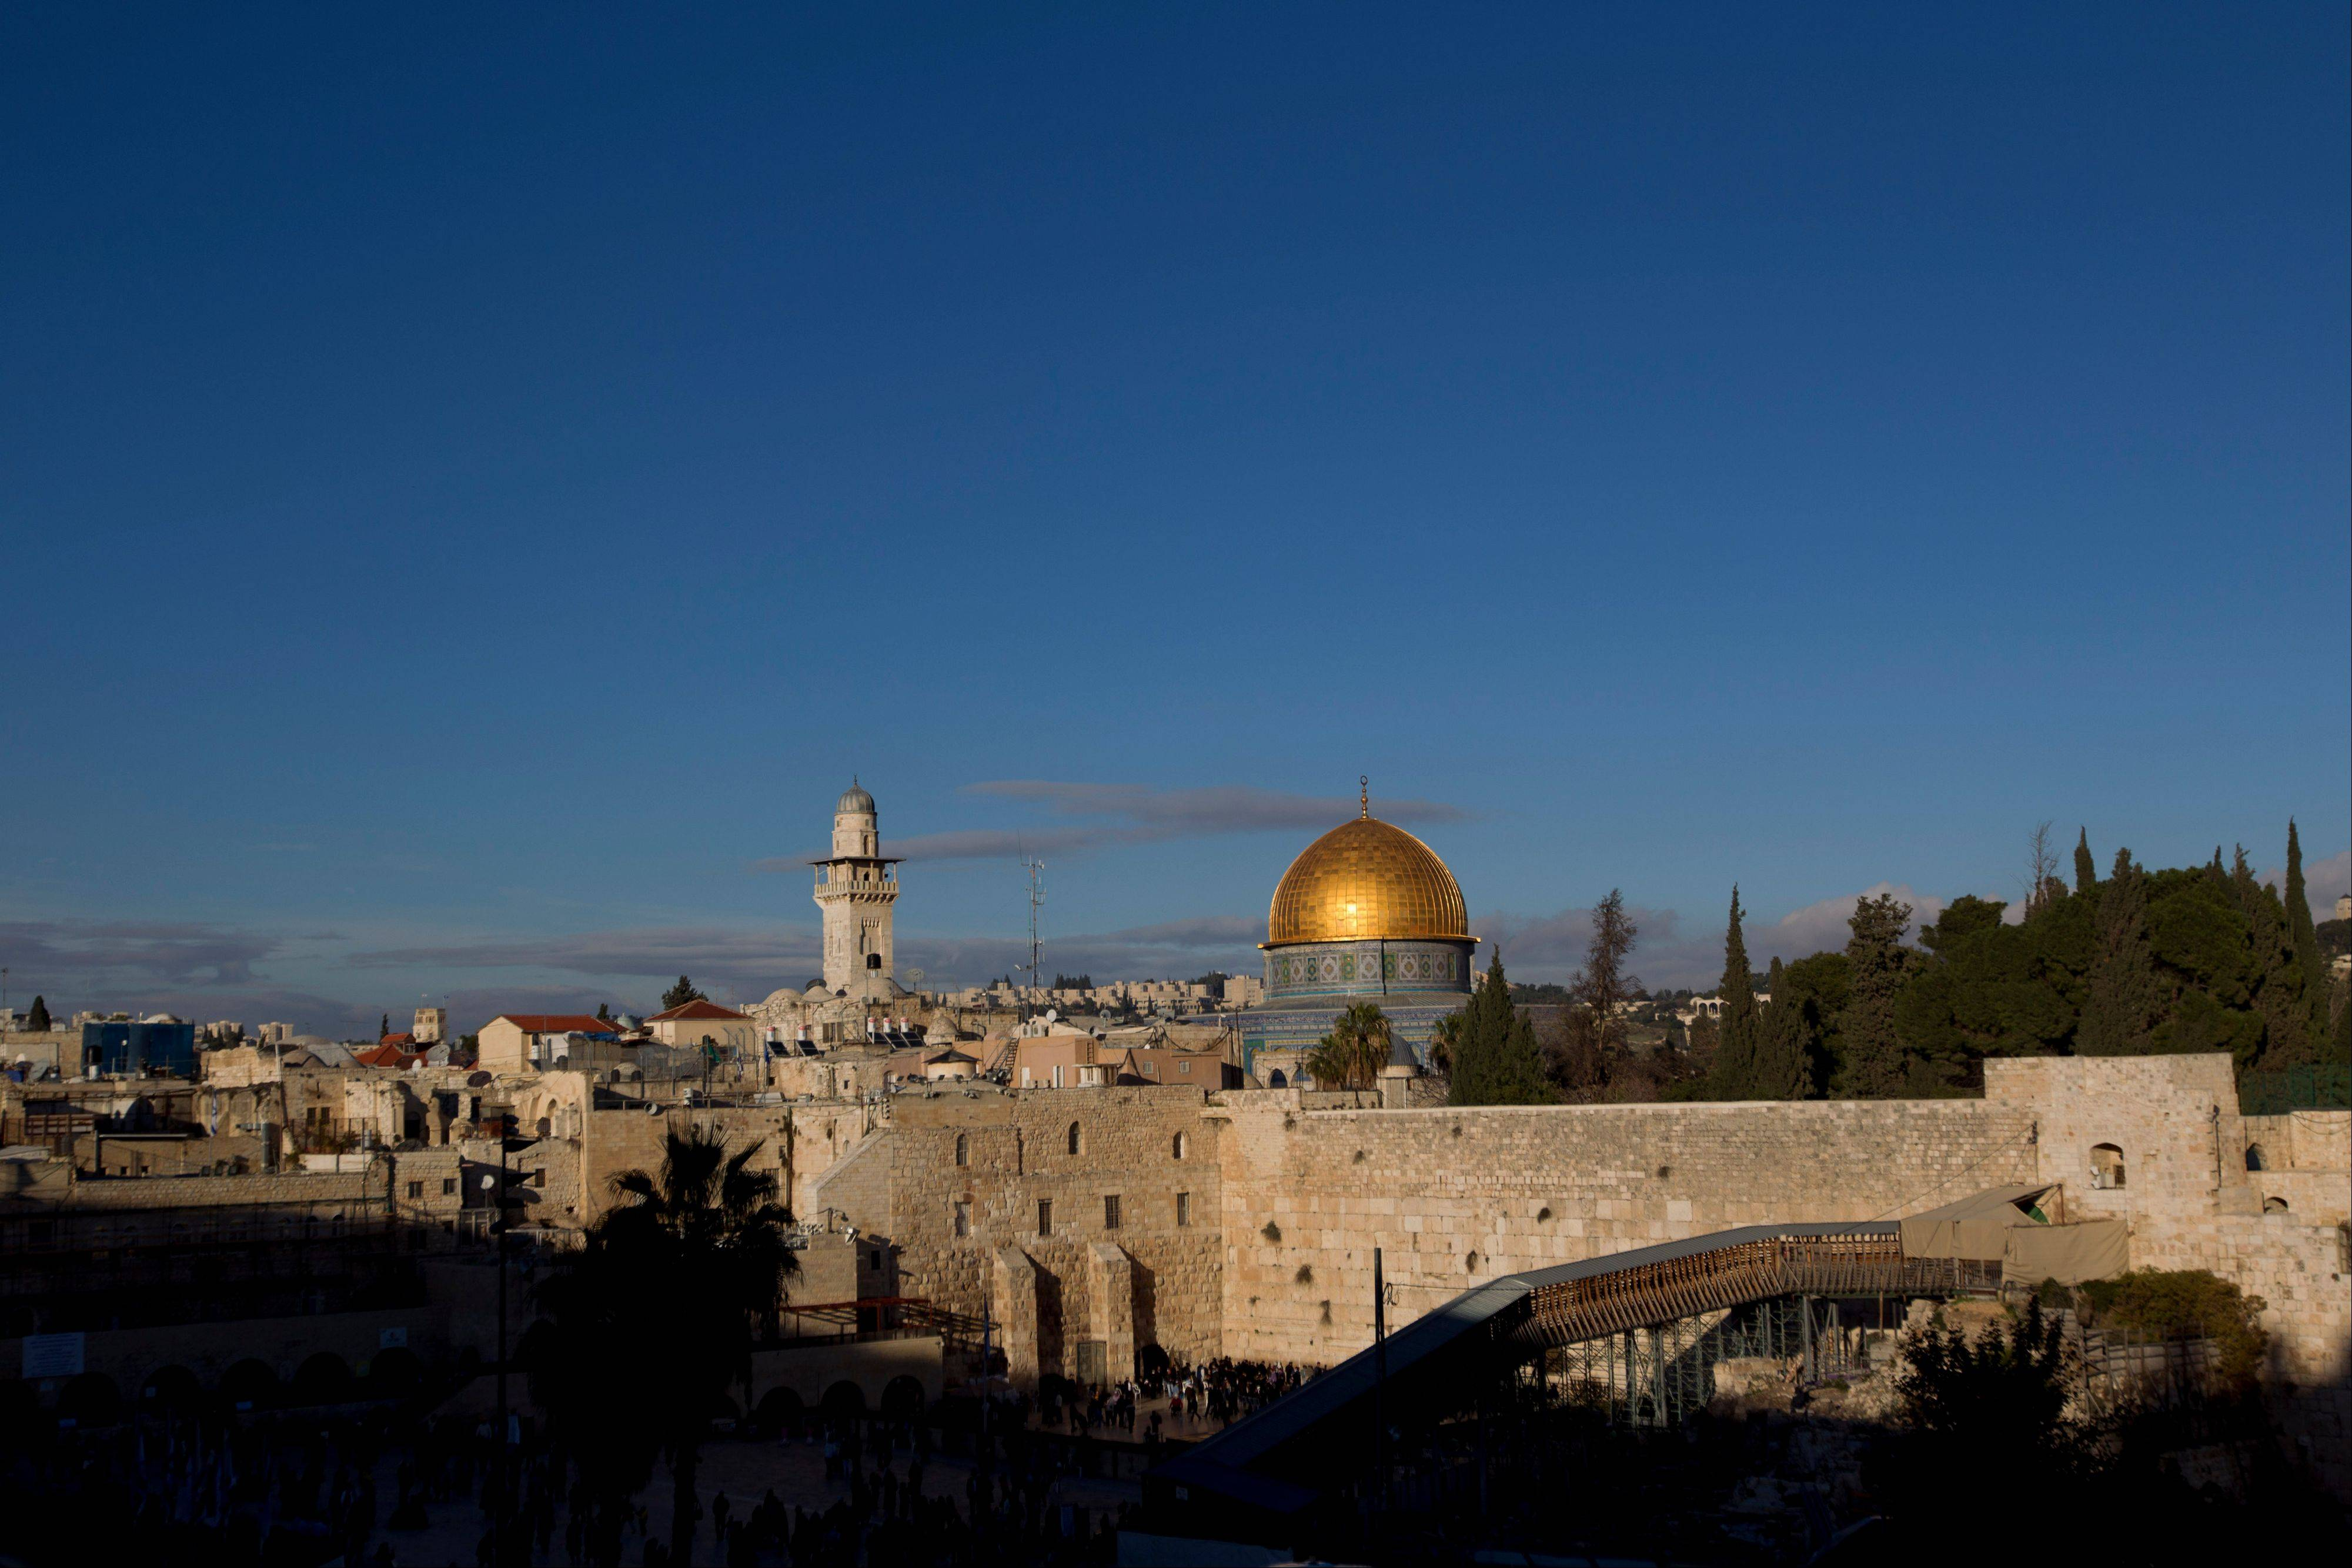 The Western Wall and golden Dome of the Rock in Jerusalem's Old City. Jerusalem is best known for its multitude of holy sites, and its most famous shrines can be visited for free.